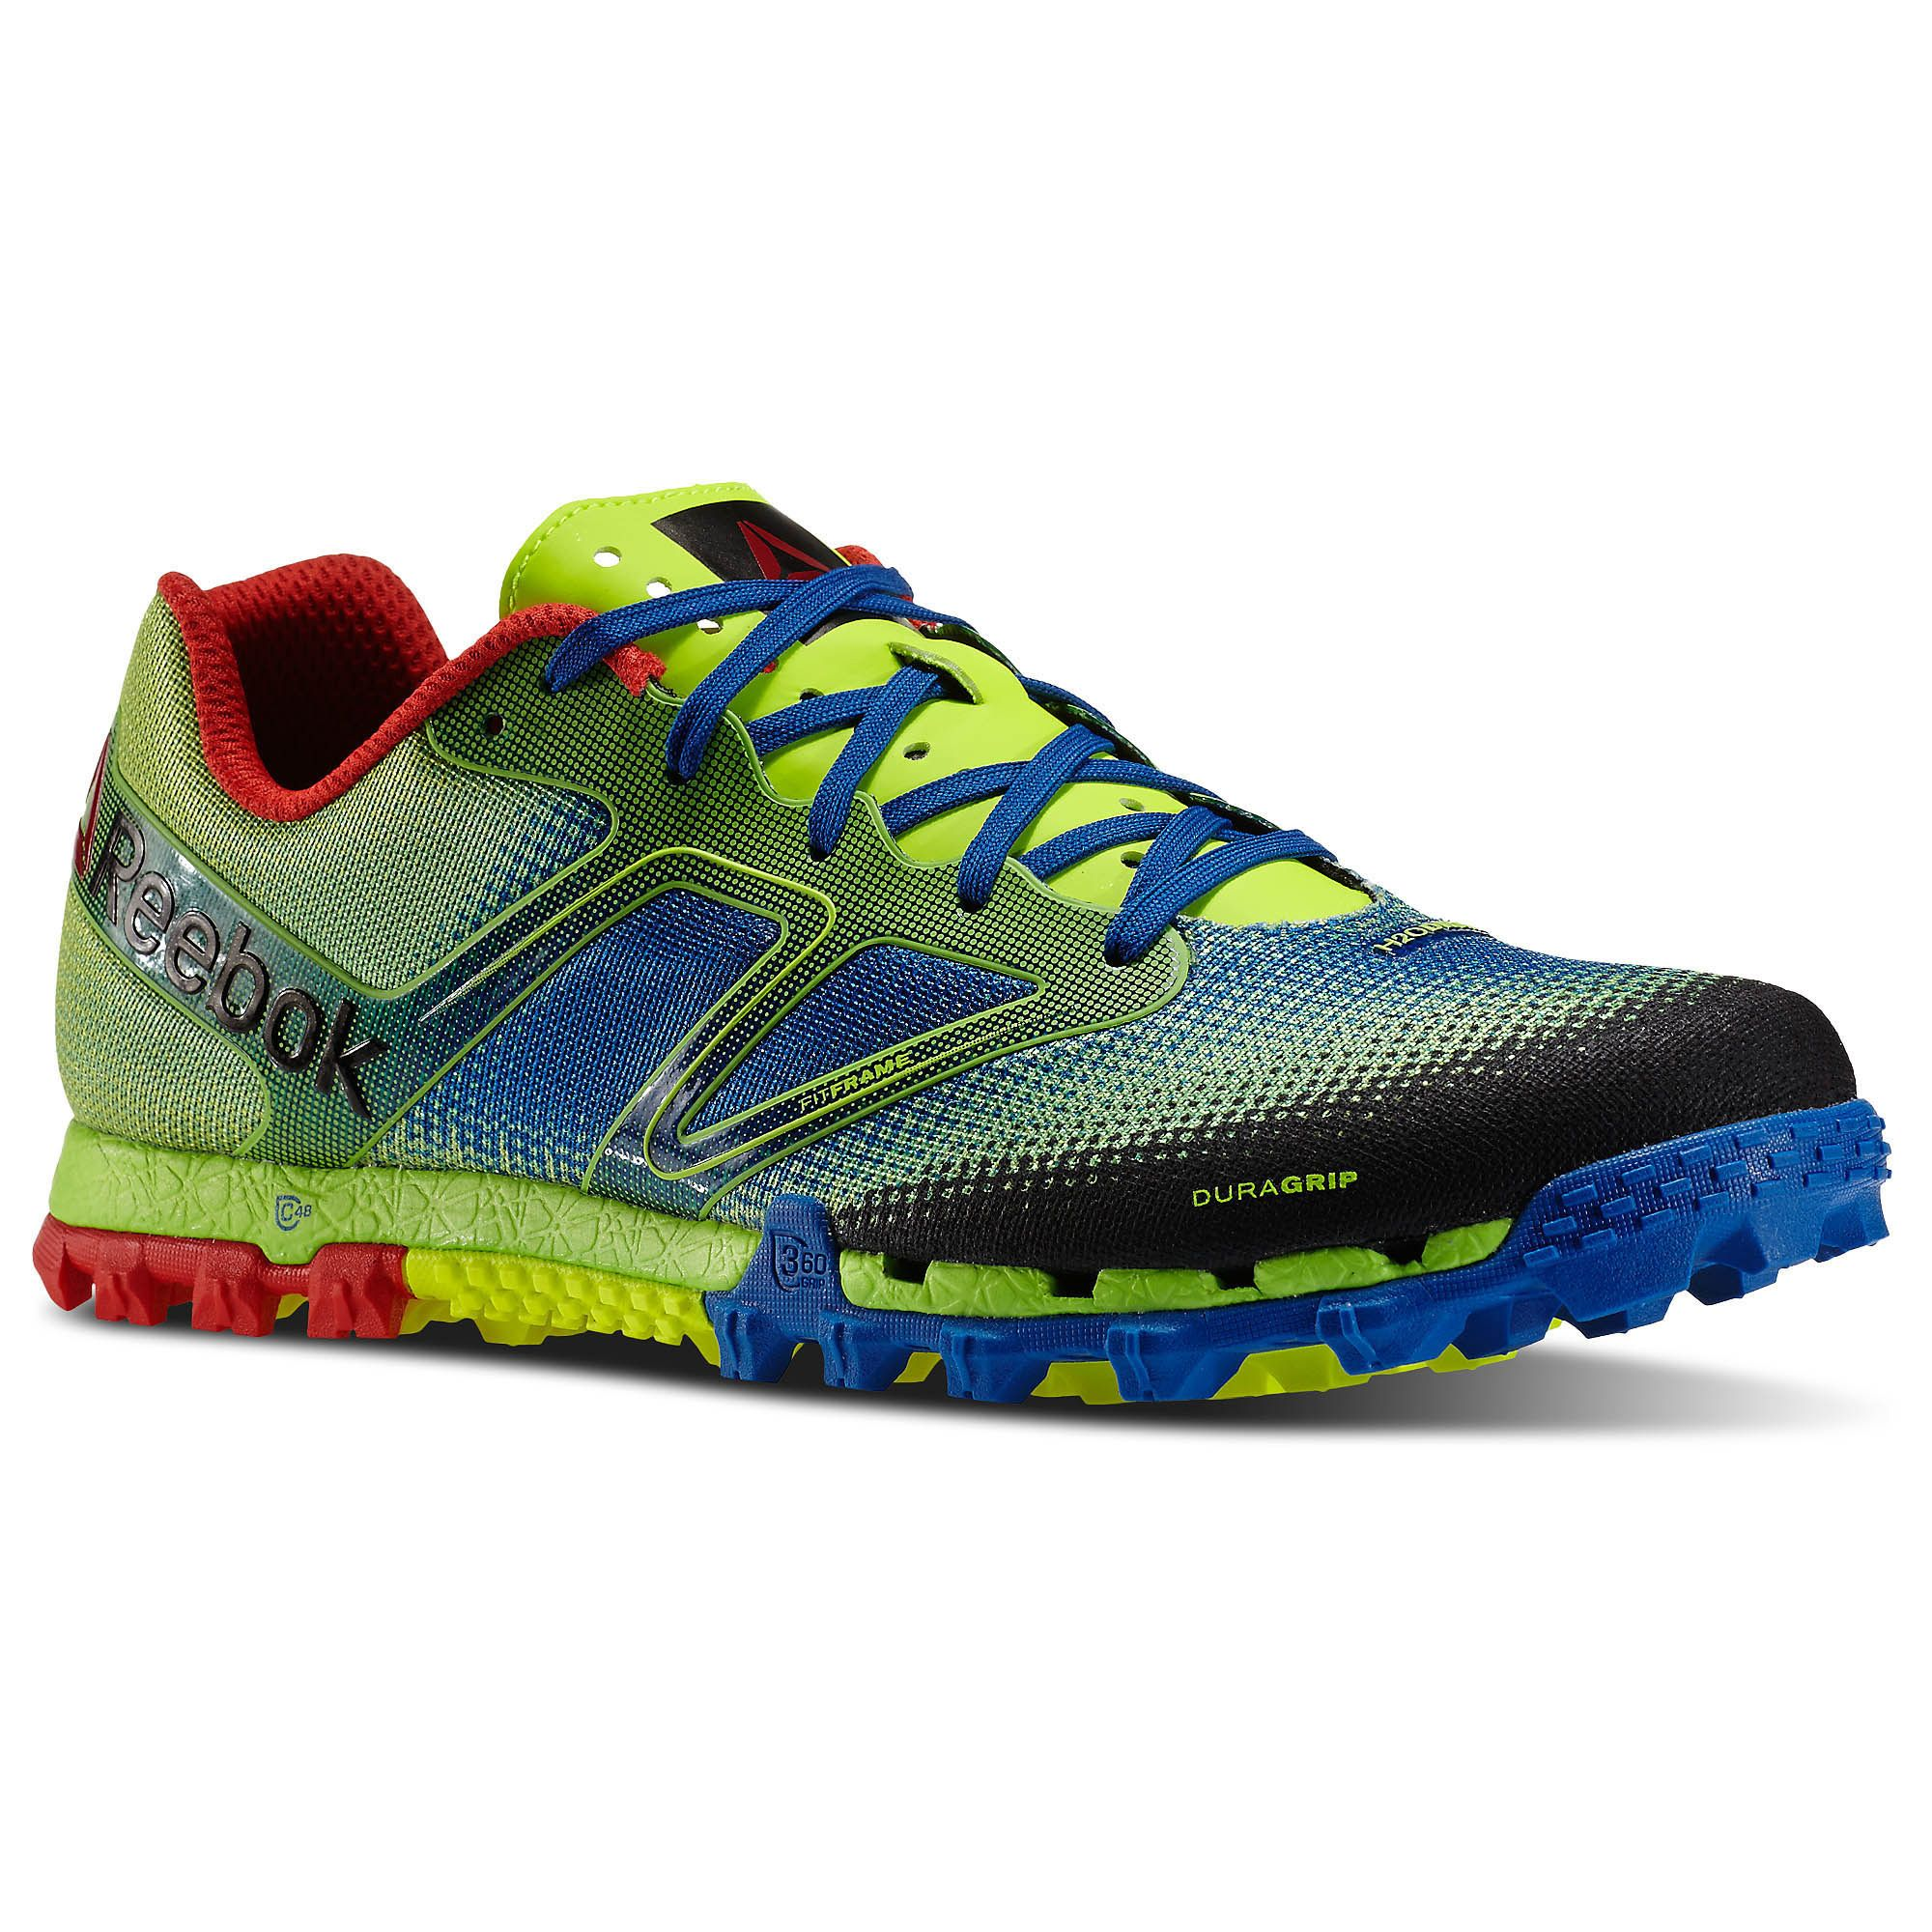 Reebok-Sports-shoes-and-running-shoes-for-men (17)